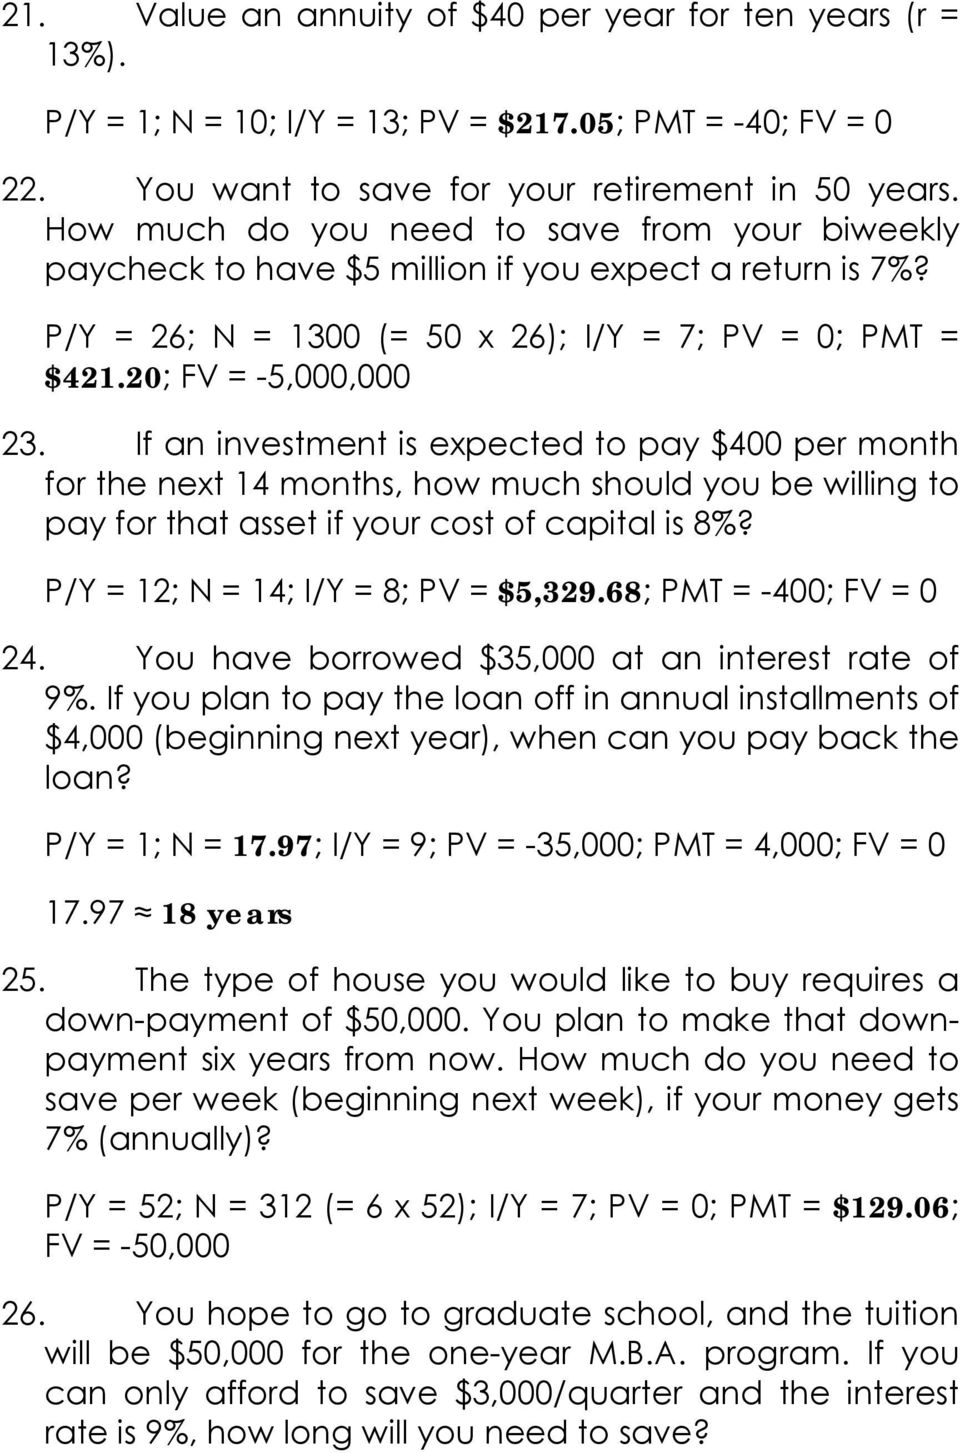 If an investment is expected to pay $400 per month for the next 14 months, how much should you be willing to pay for that asset if your cost of capital is 8%? P/Y = 12; N = 14; I/Y = 8; PV = $5,329.